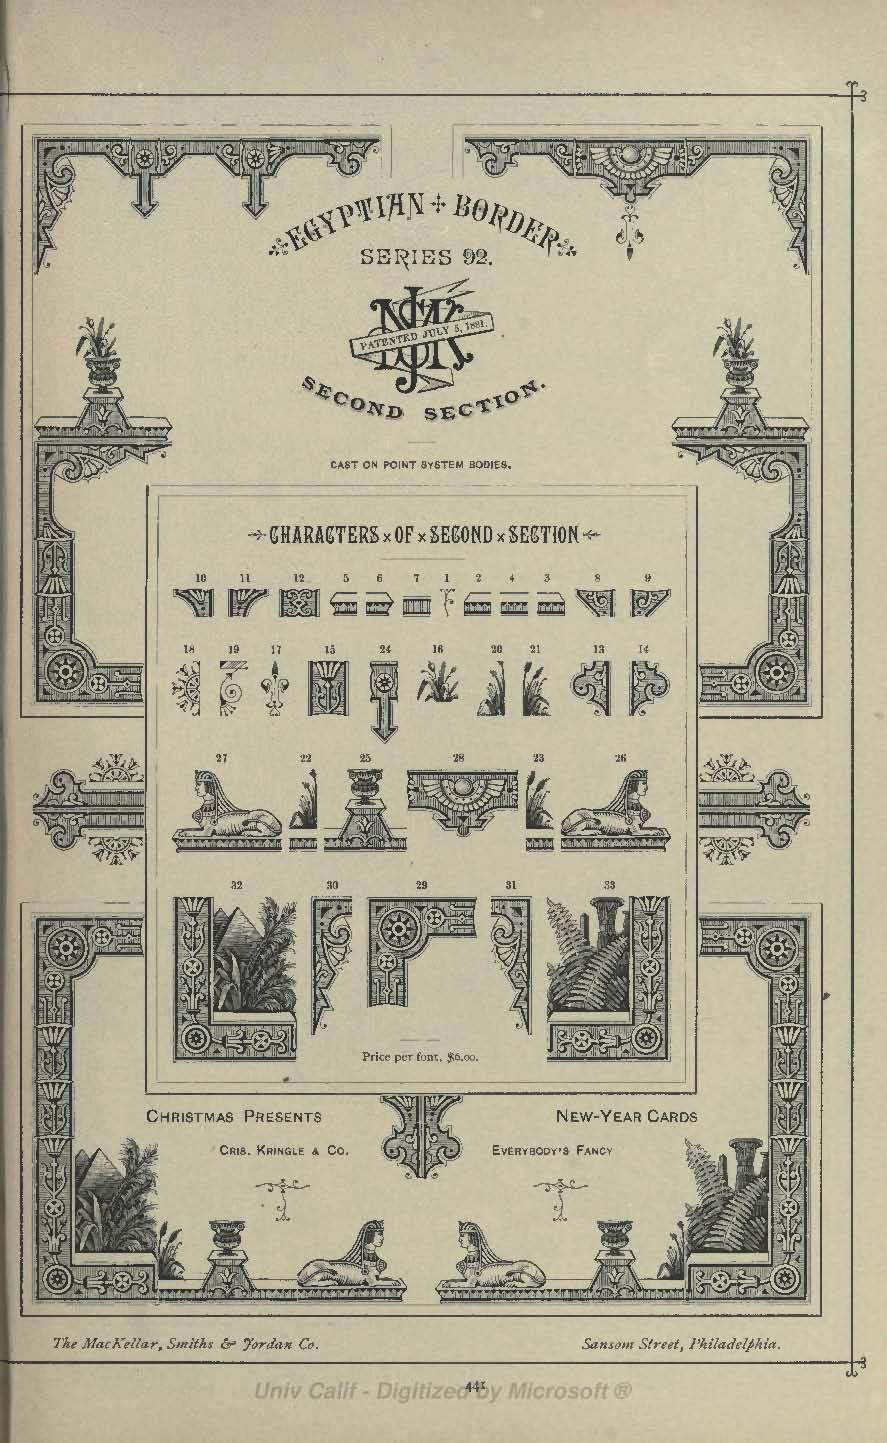 Egyptian Border Second Section from MacKellar Smiths and Jordan 1892 type catalog